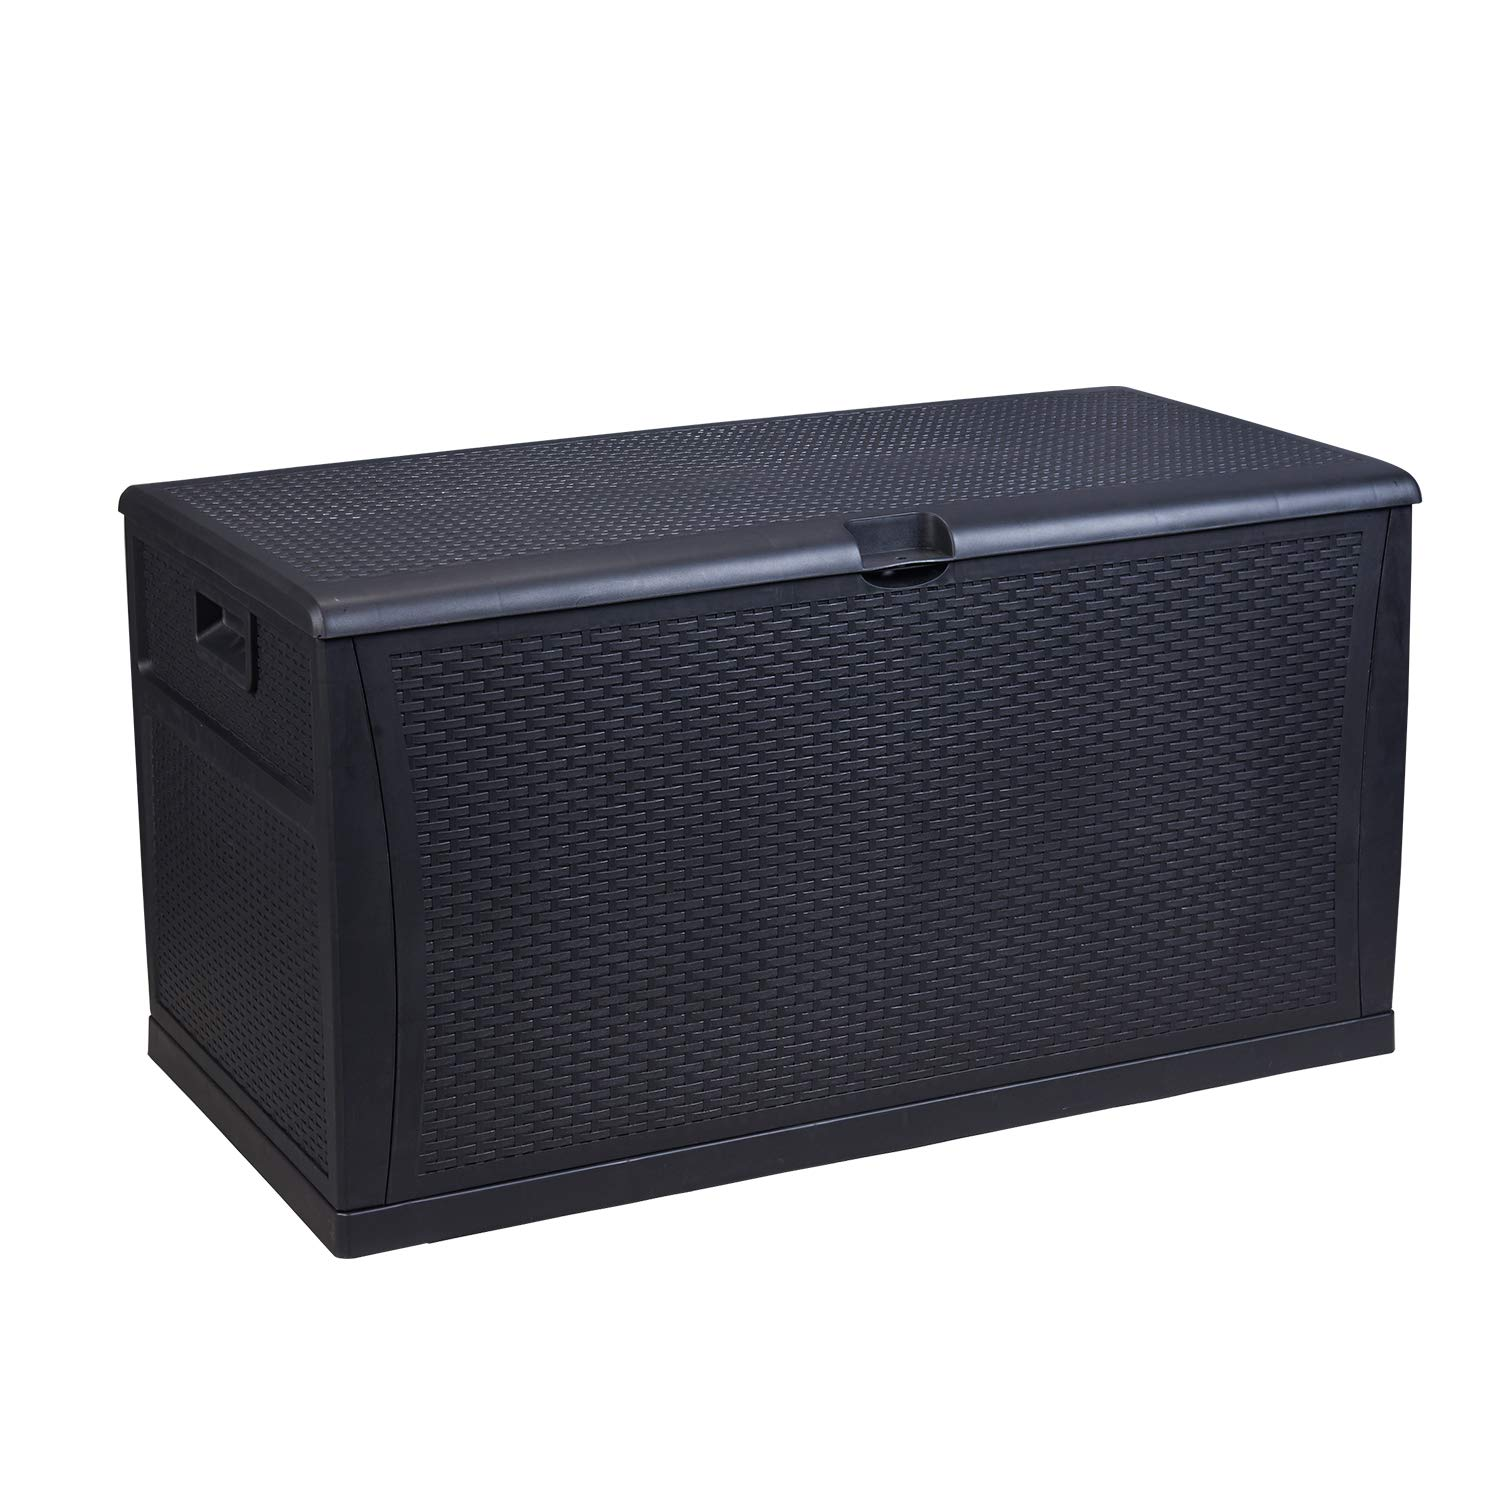 Wonlink Wicker Storage Trunk,Patio Storage Box Waterproof,150 Gallon Deck Box